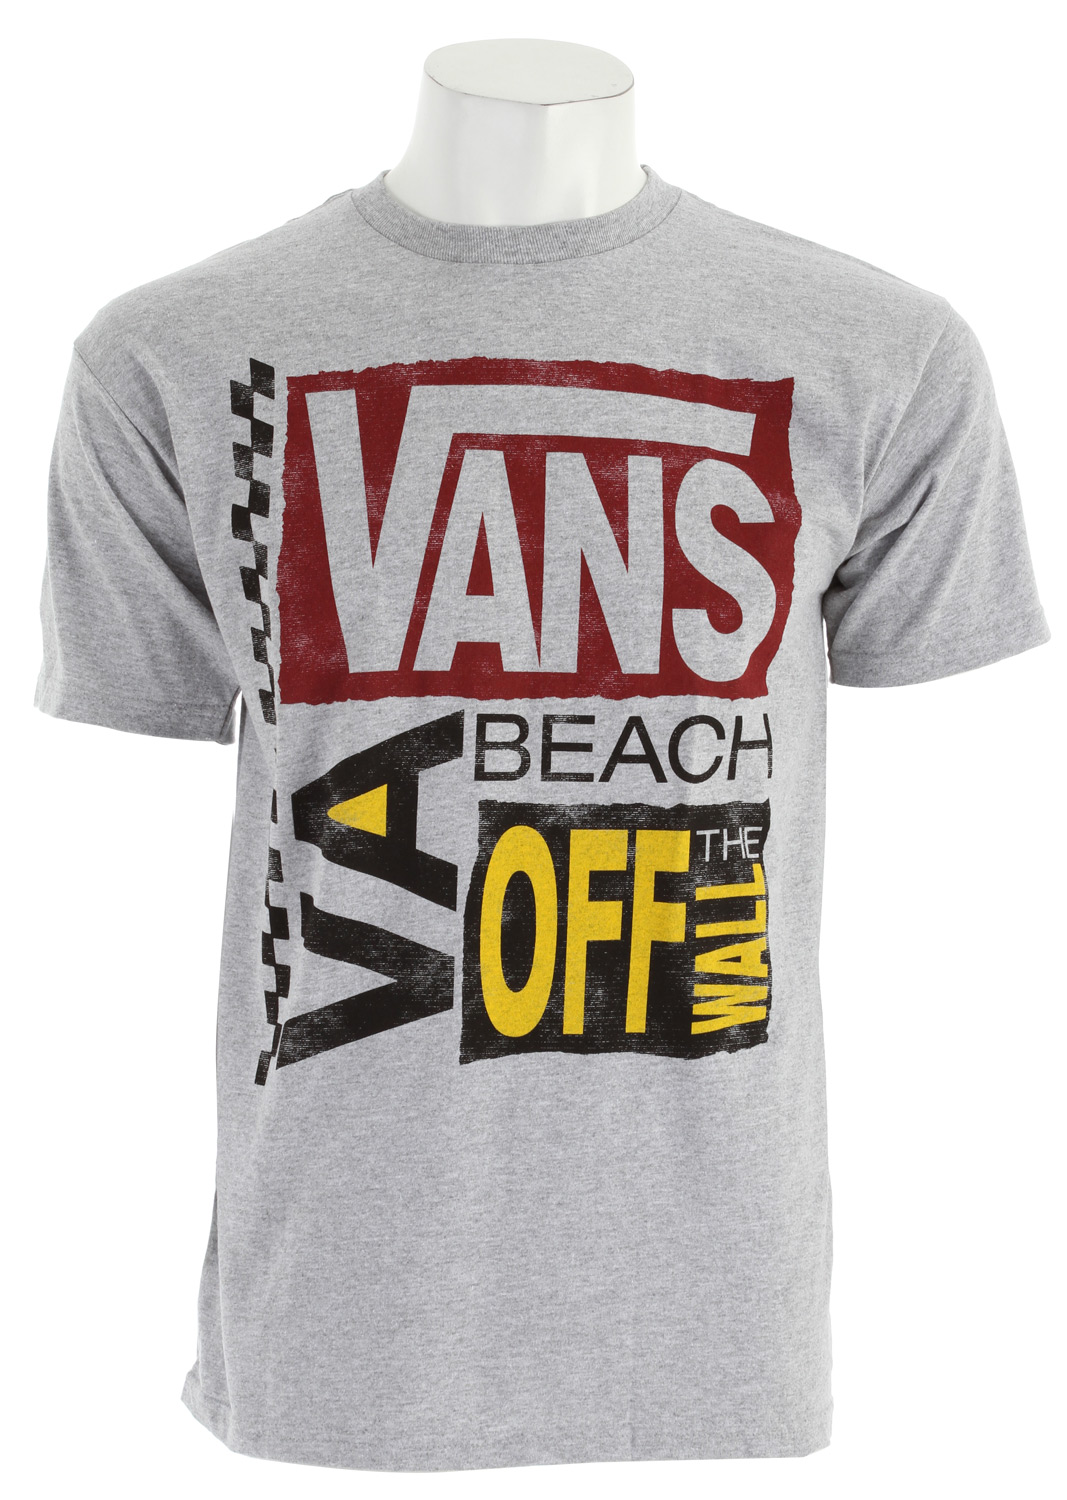 Skateboard Key Features of The Vans Futurepast VB T-Shirt: Regular Fit Crew Neck Short Sleeve 100% Cotton 30/1 Custom Fit 4.5 oz. combed ringspun cotton tee shirt Front chest screen print with water-based or softhand plastisol ink treatment Clip label on back hem - $18.95